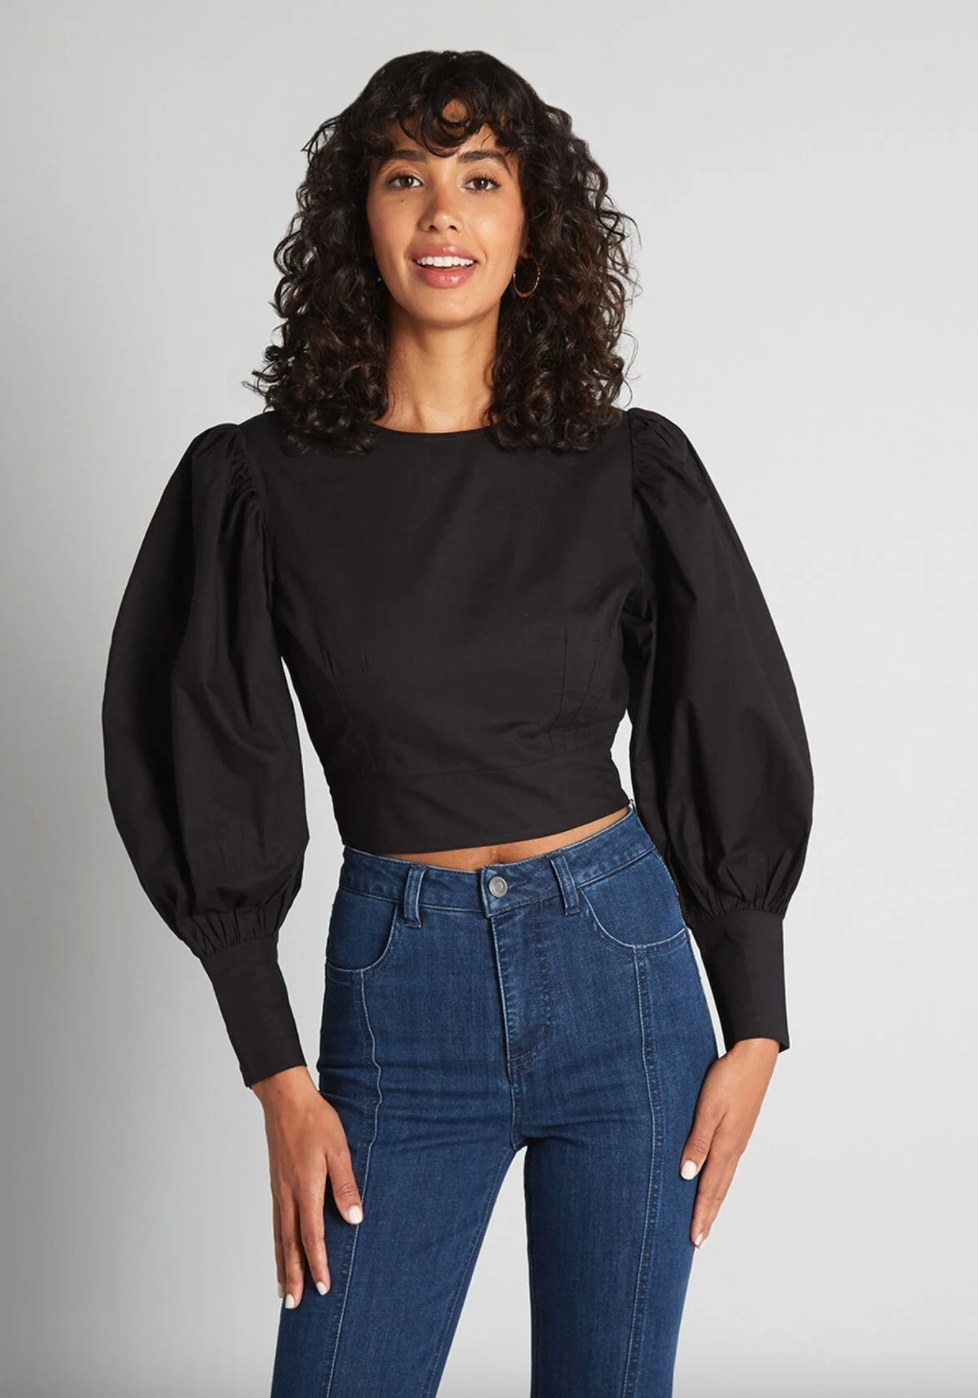 The cropped blouse in black on a model wearing high waisted jeans